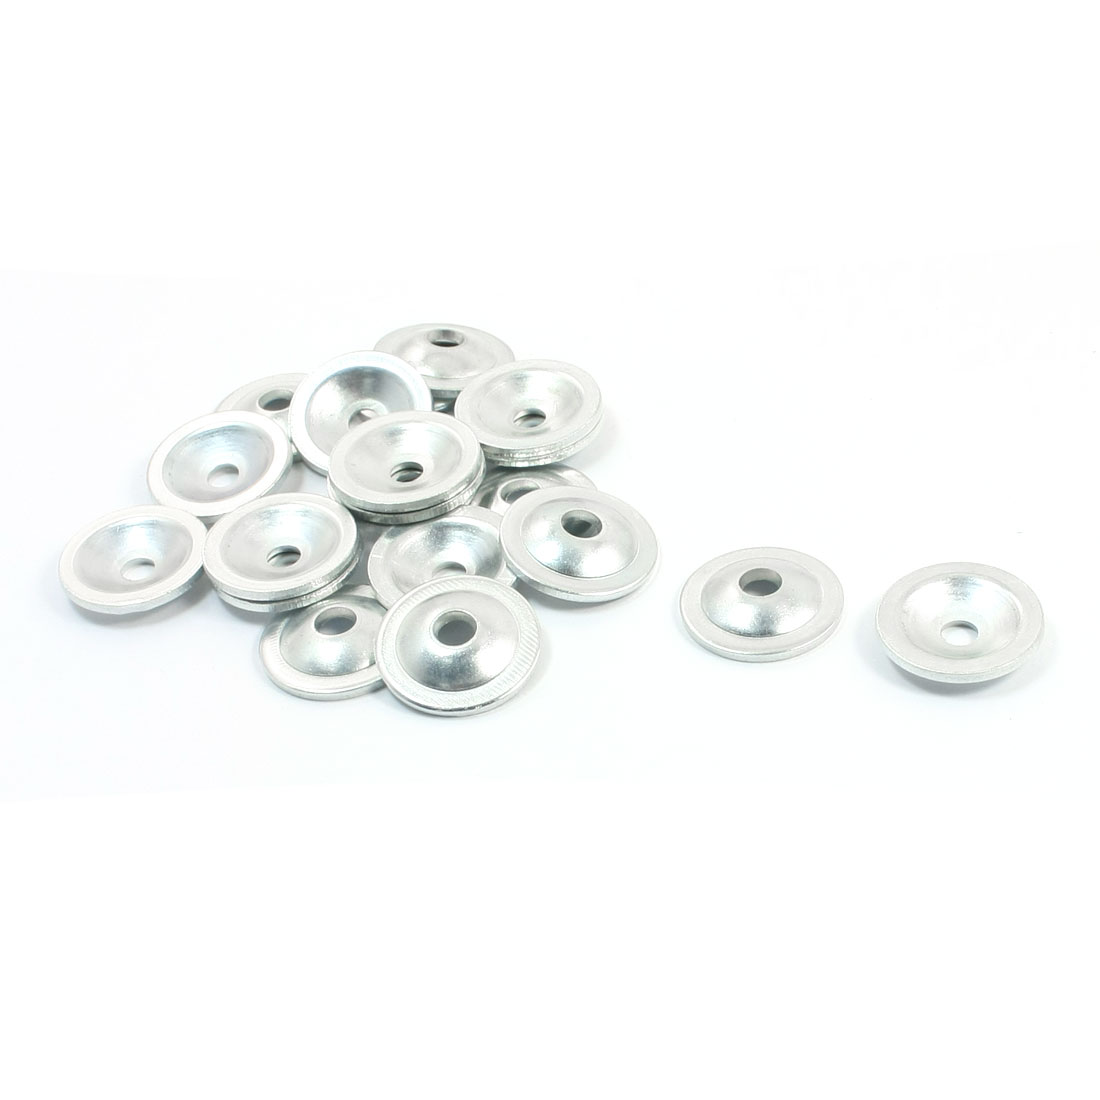 Home Furniture 5.4mm Dia Hole Round Silver Tone Metal Screw Cup Finishing Countersunk Washer Spacer 20Pcs